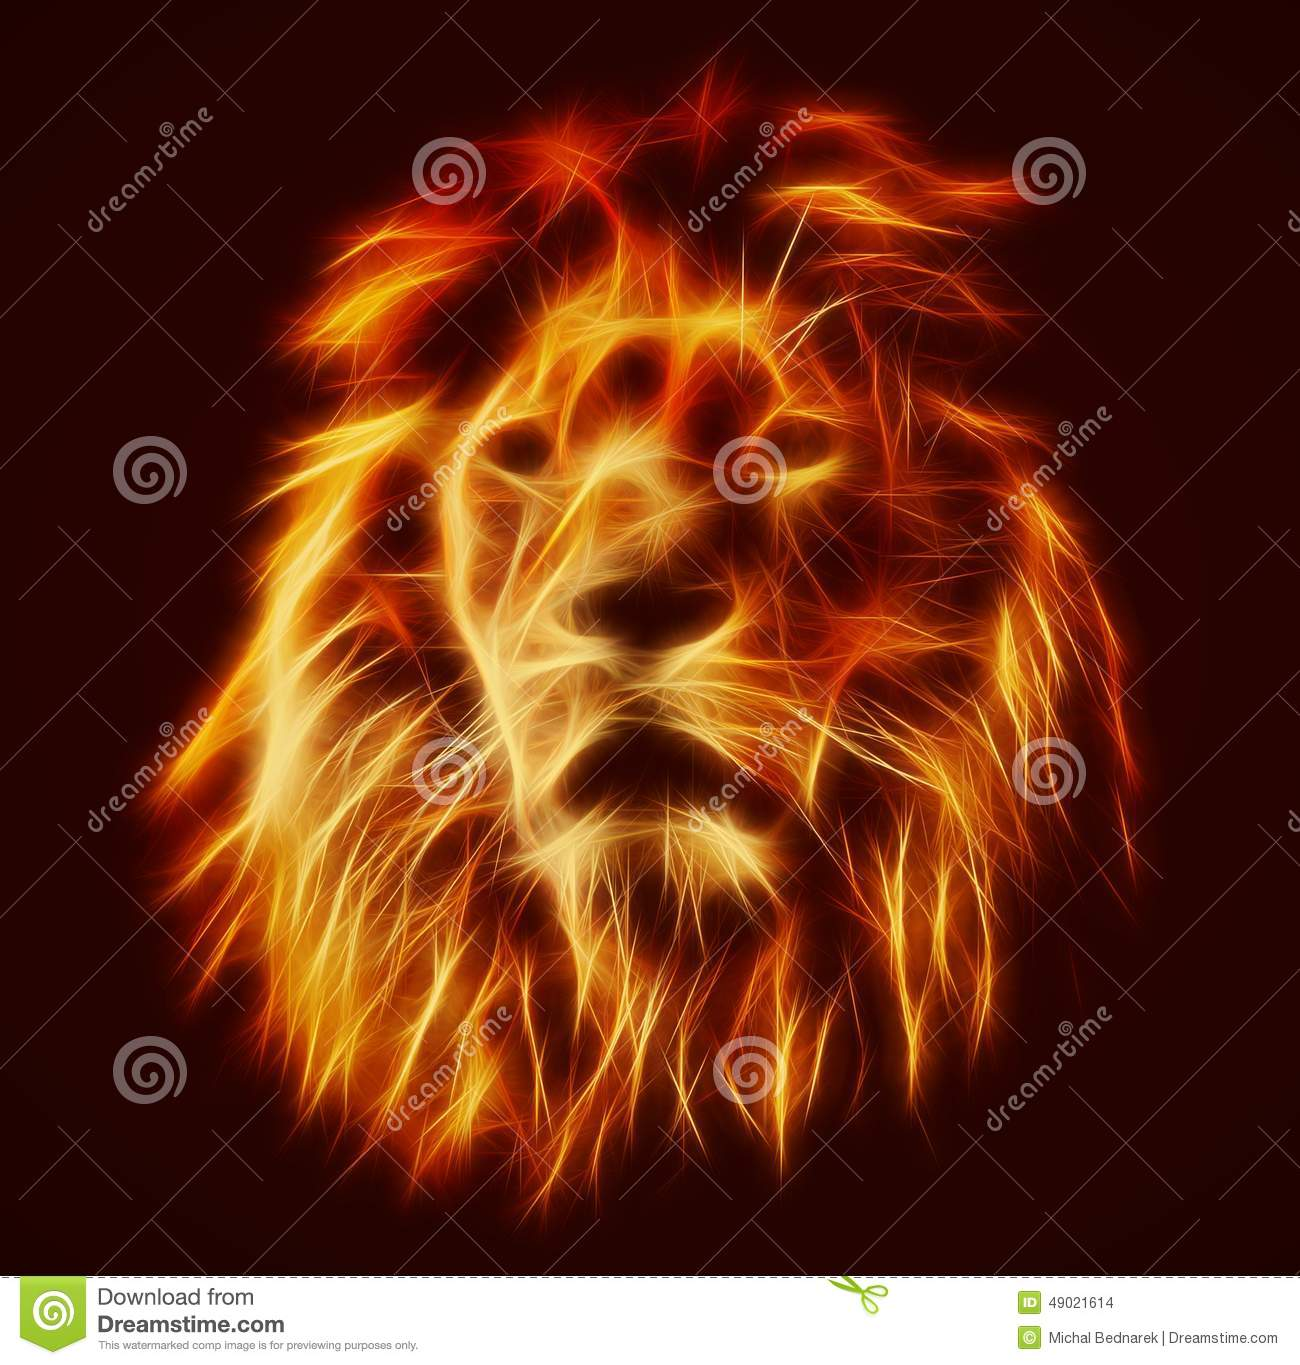 Free vector graphic tiger predator cat big cat free image on - Abstract Artistic Lion Portrait Fire Flames Fur Stock